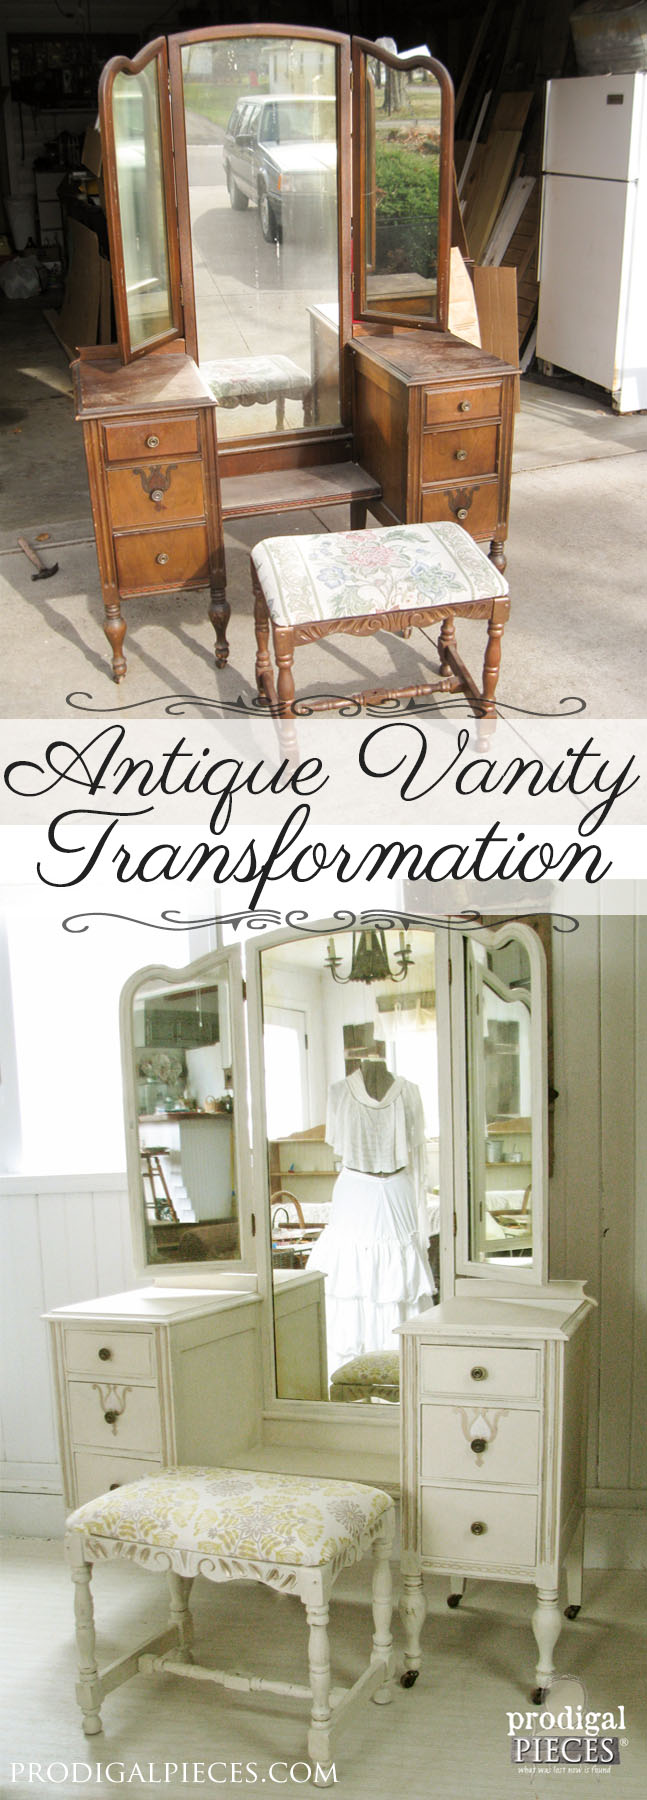 An Antique Vanity Transformation by Prodigal Pieces | prodigalpieces.com